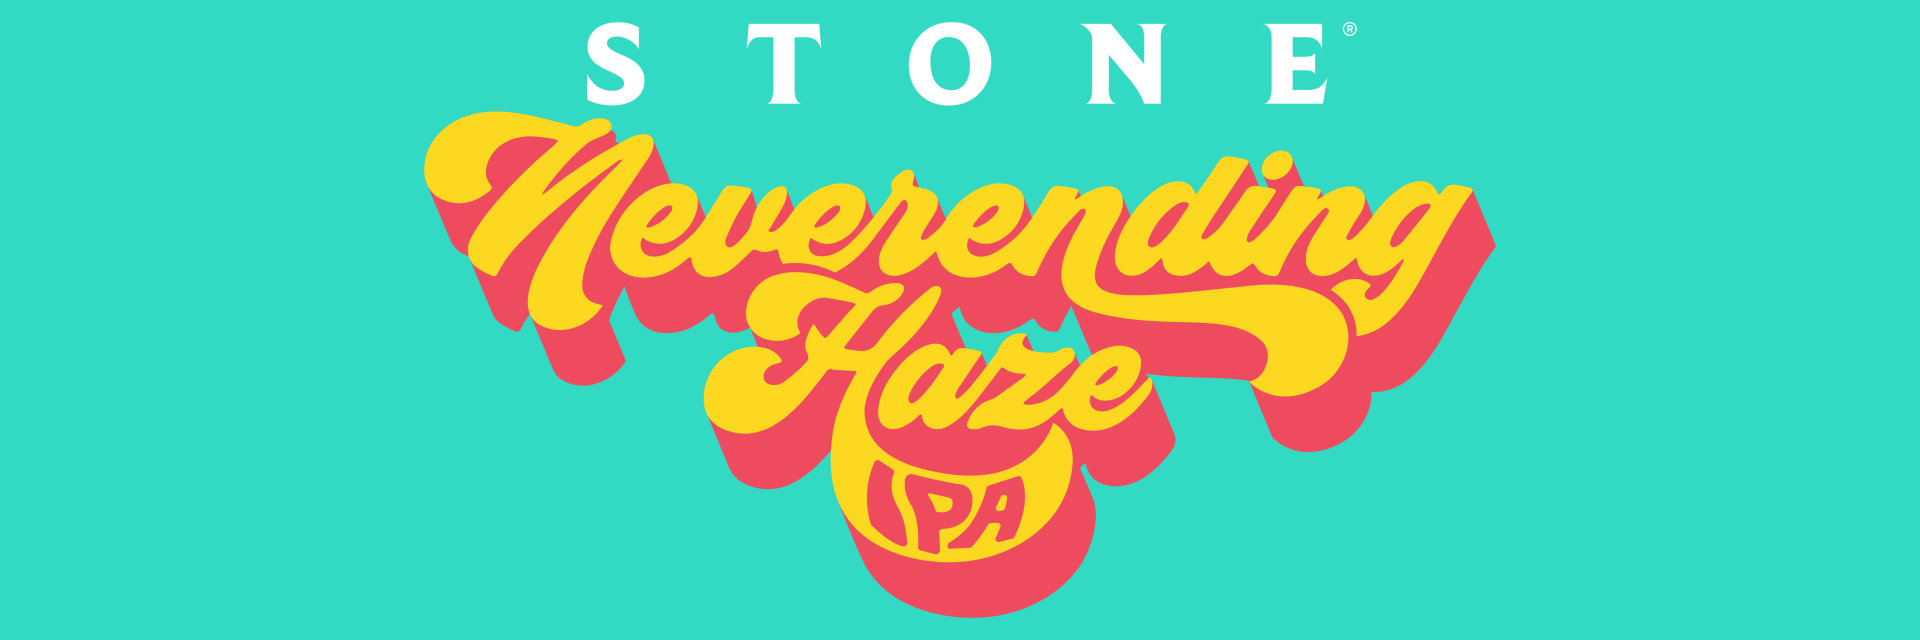 Stone Brewing adds Stone Neverending Haze IPA to its core lineup